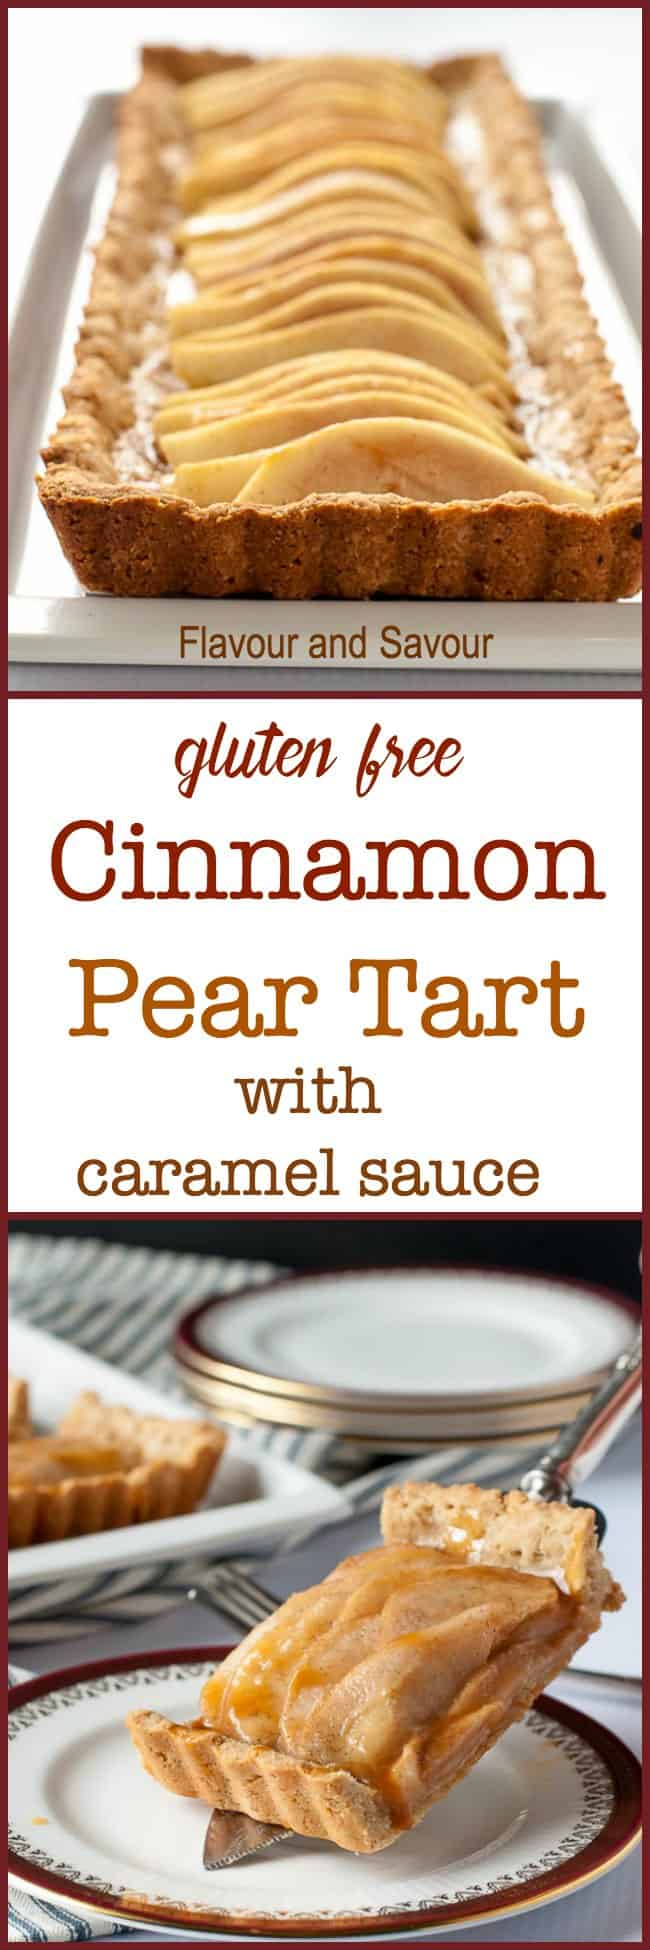 This Gluten-Free Cinnamon Pear Tart is made with a tender almond flour and oat flour crust, sweetened with maple syrup and drizzled with caramel sauce. #GlutenFree #pear #tart #caramel #AlmondFlour